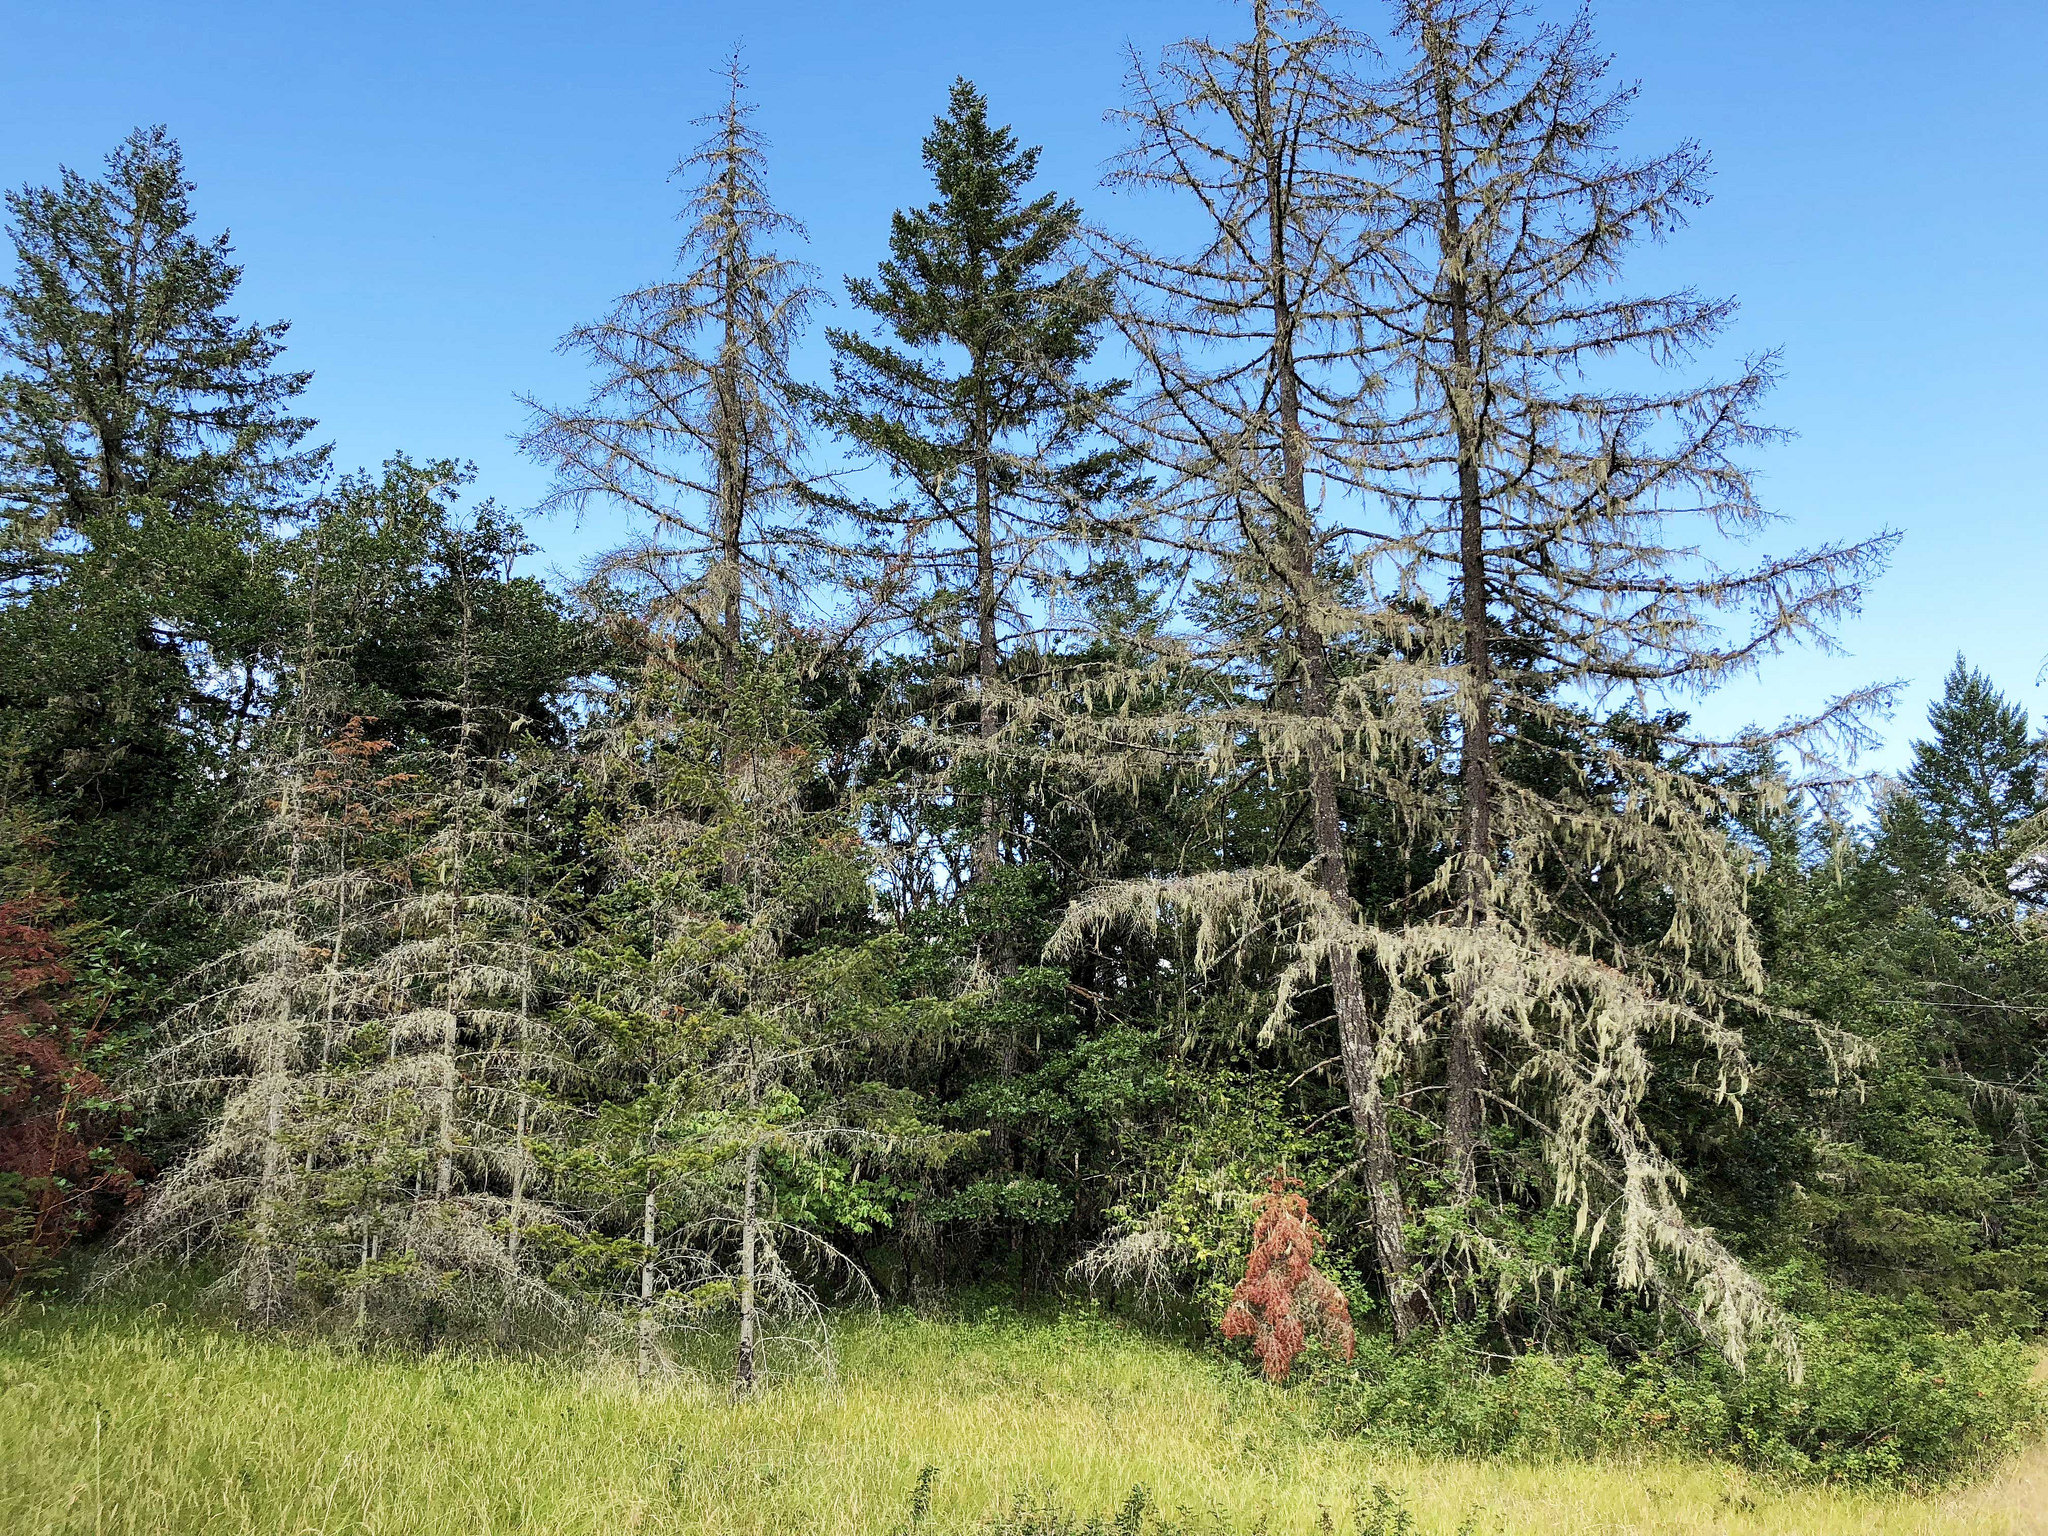 Conifers – especially Doug-firs – are suffering from drought